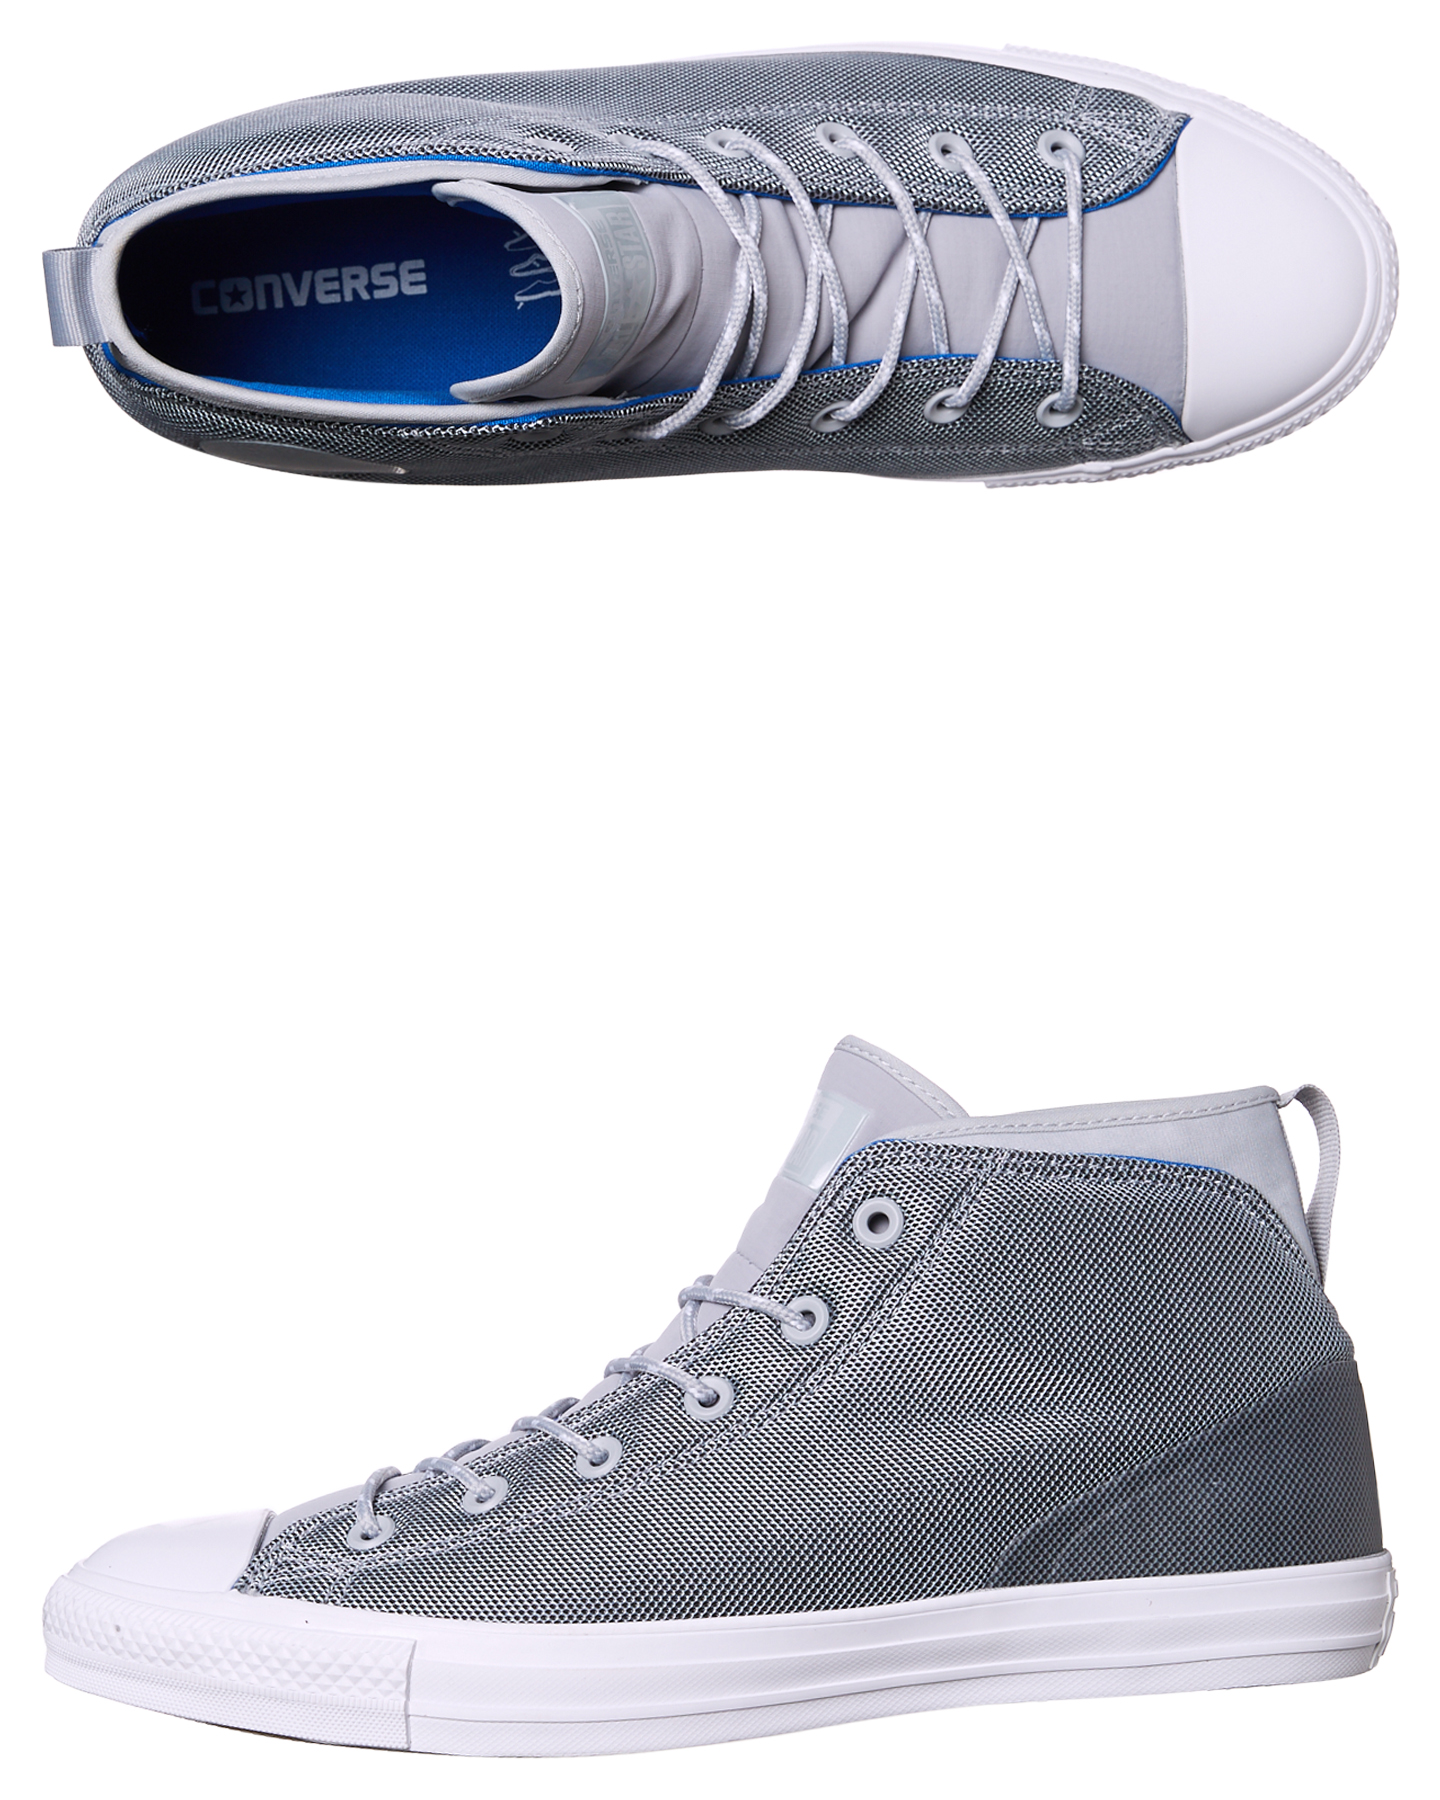 Converse Chuck Taylor All Star Syde Street Hi Shoe Wolf